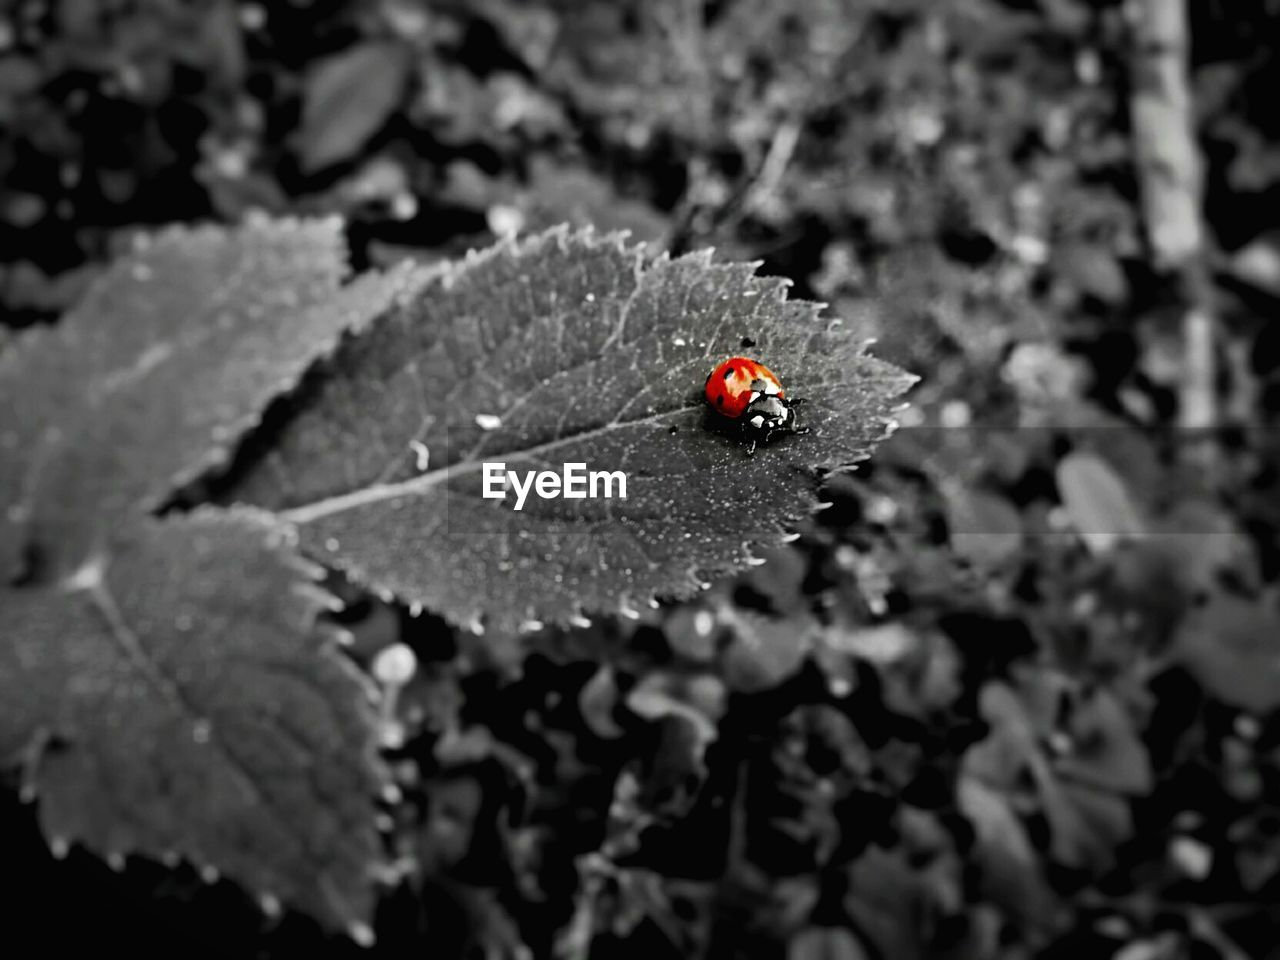 insect, invertebrate, animals in the wild, animal, animal themes, animal wildlife, one animal, close-up, beetle, ladybug, plant part, leaf, day, red, nature, selective focus, no people, outdoors, focus on foreground, high angle view